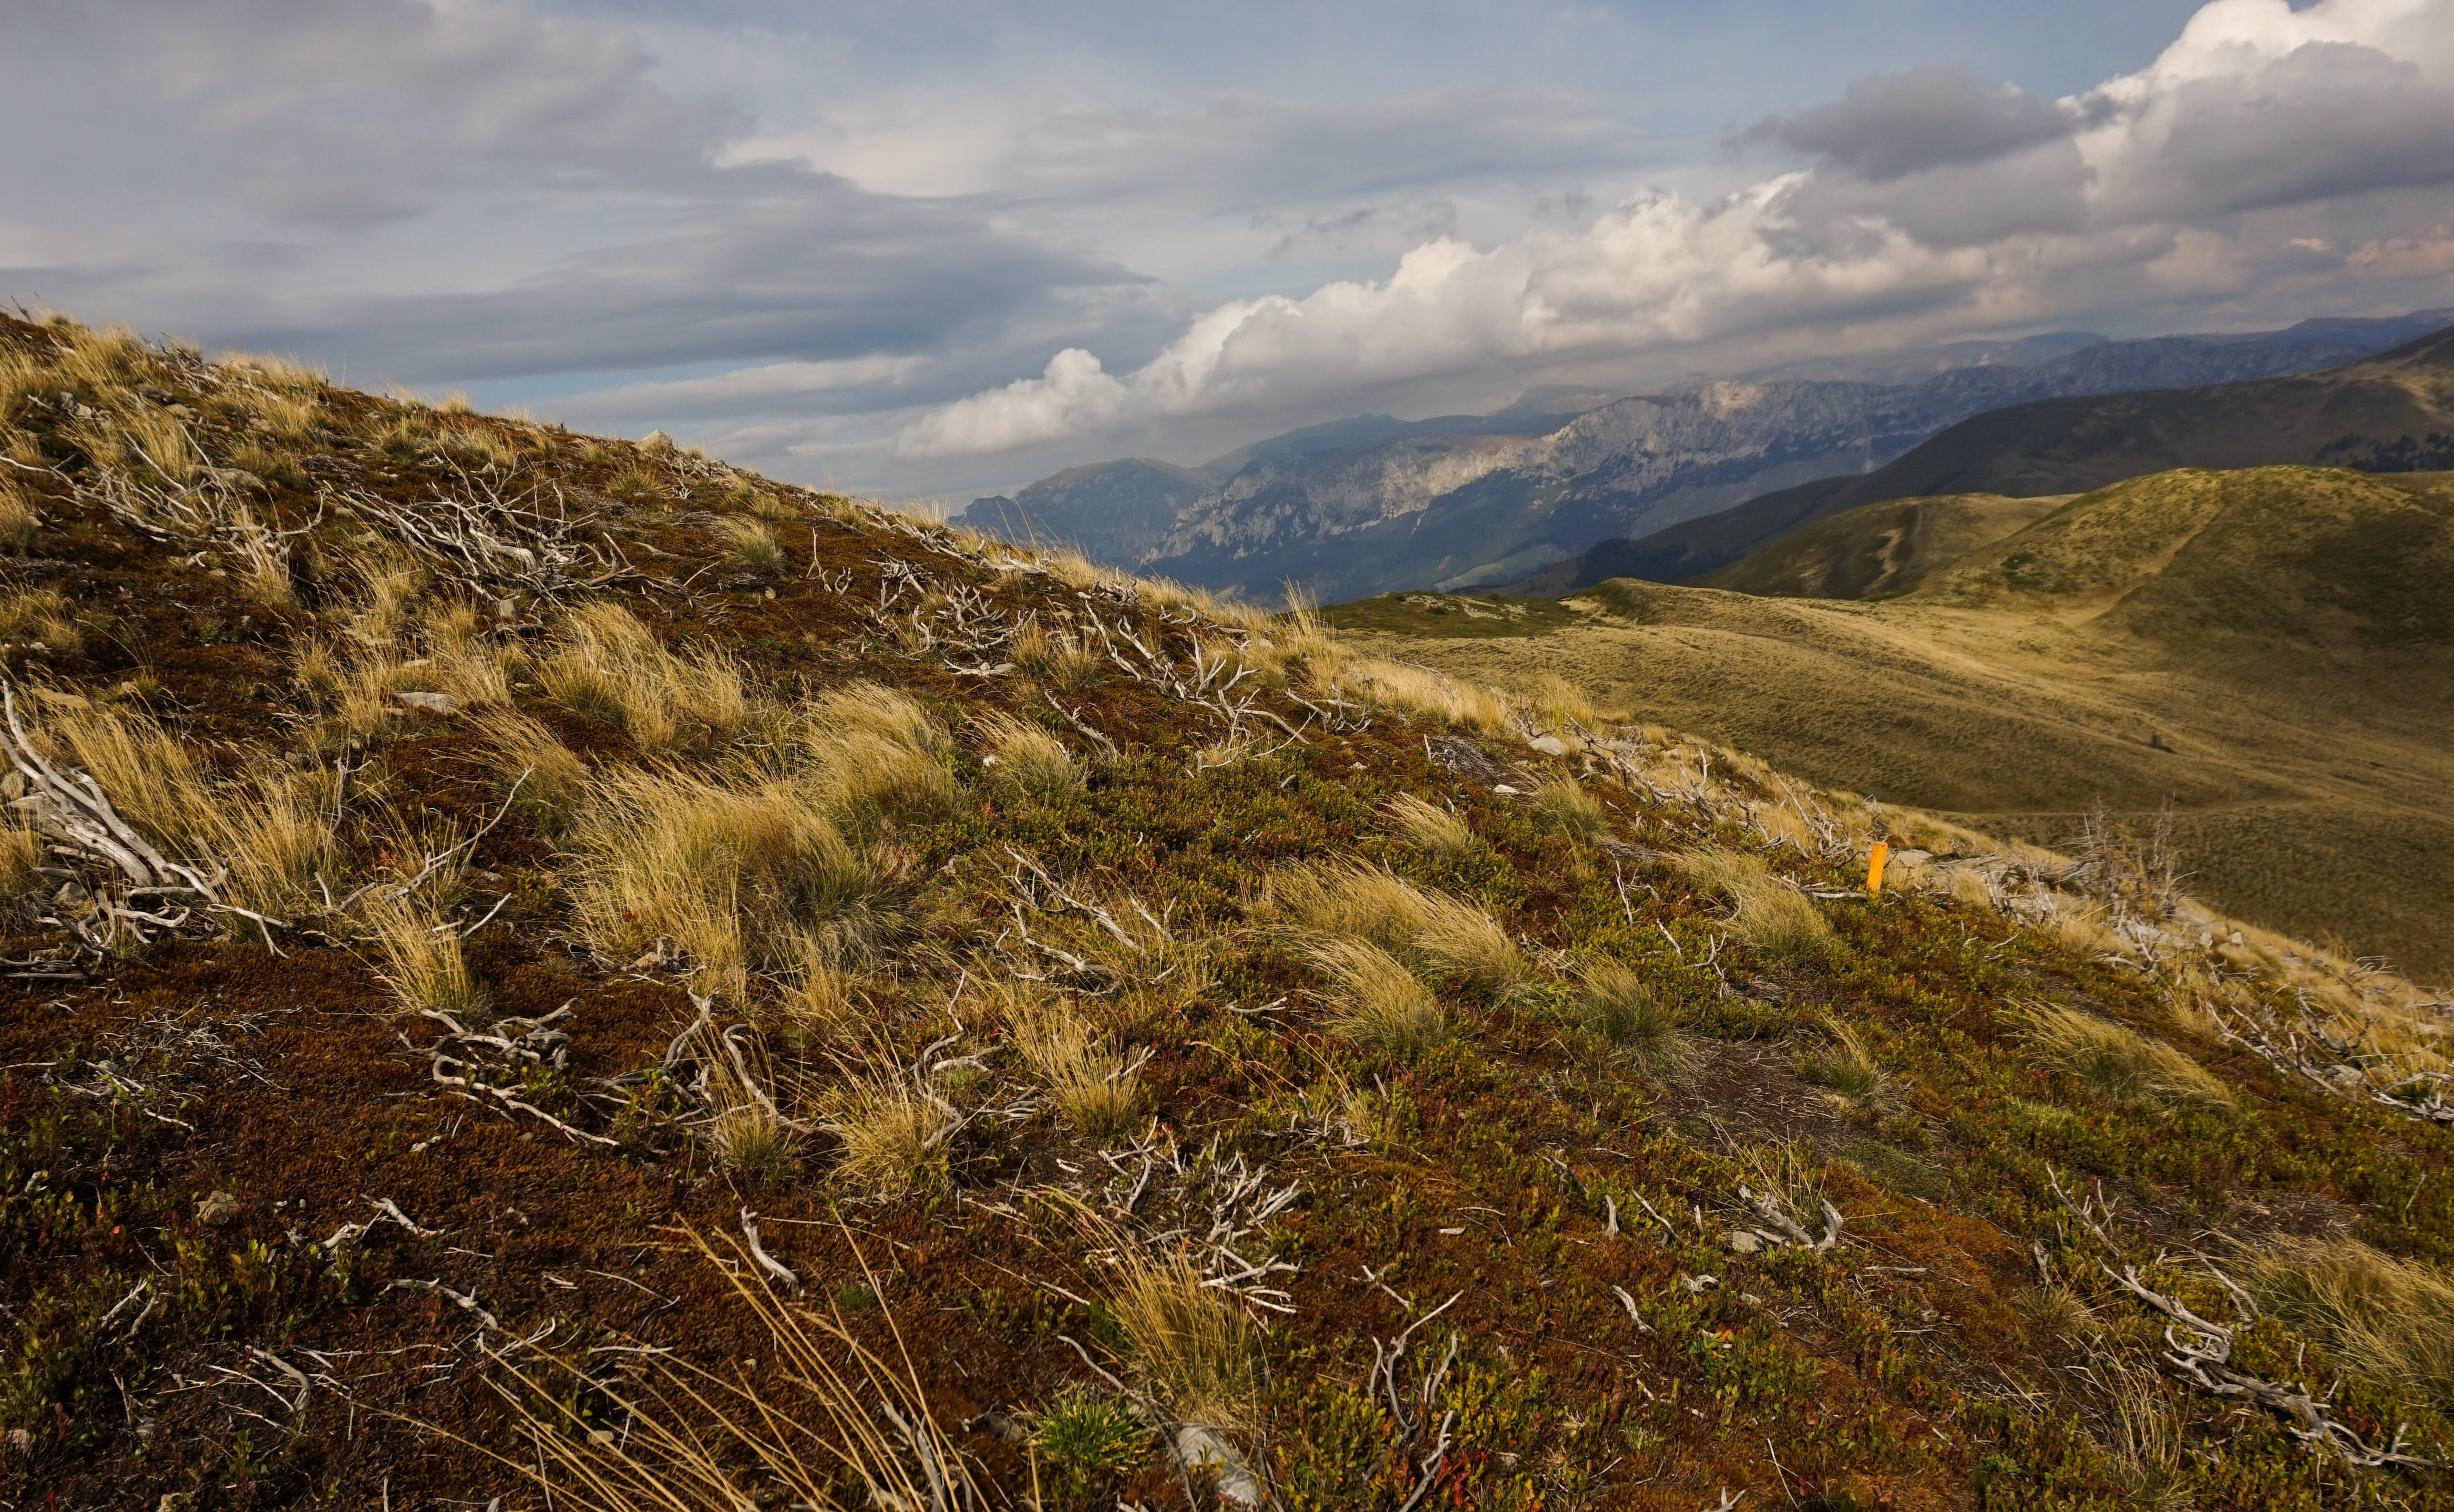 Landscape Photography of Steppe and Mountain Ranges